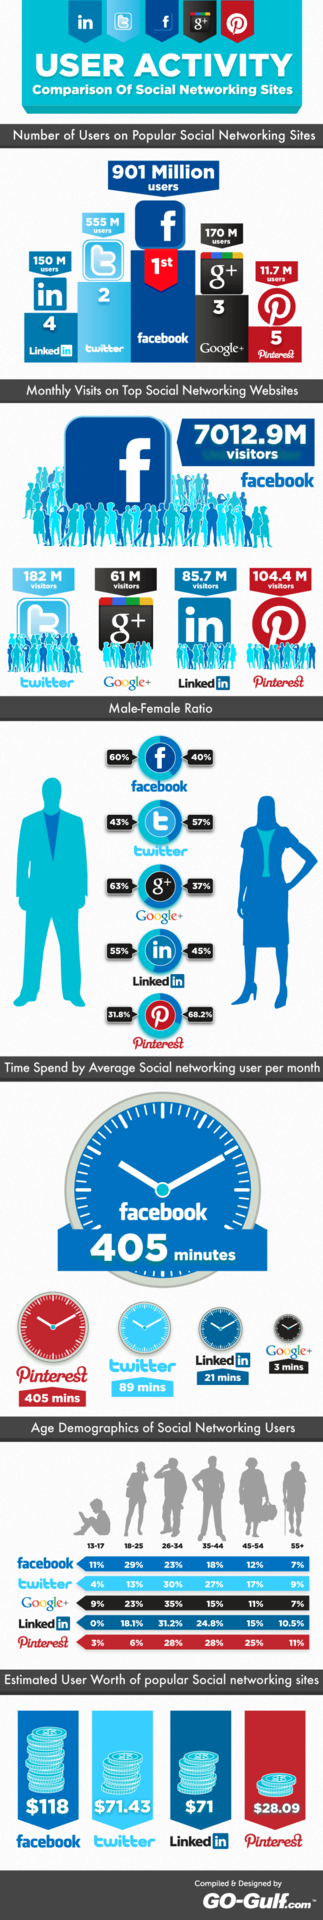 User Activity: Comparison of Social Networking Sites [infographic]